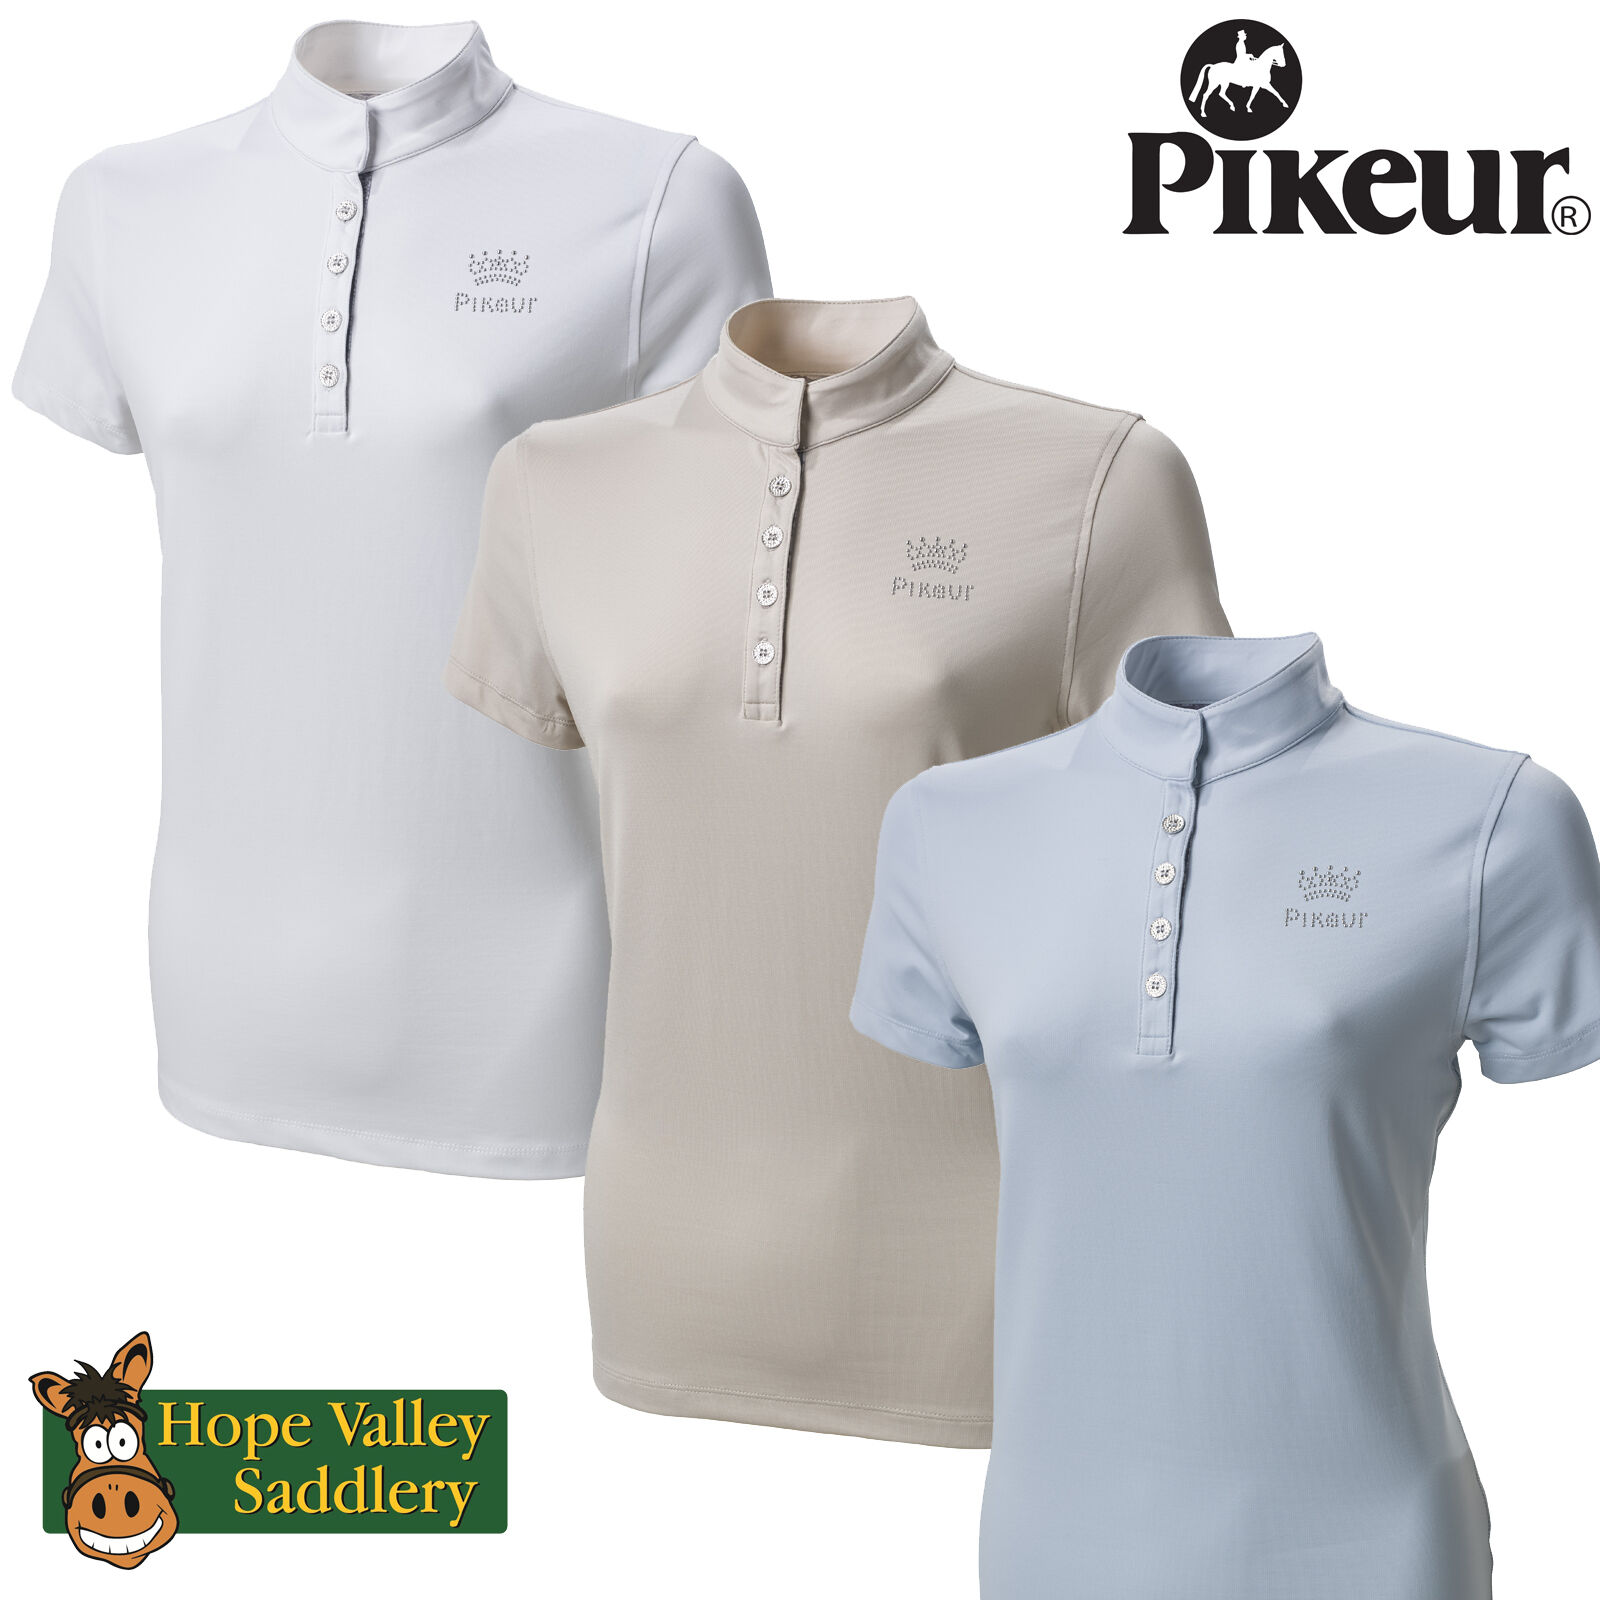 Pikeur Ladies Premium Competition Shirt  (442) BNWT  ultra-low prices